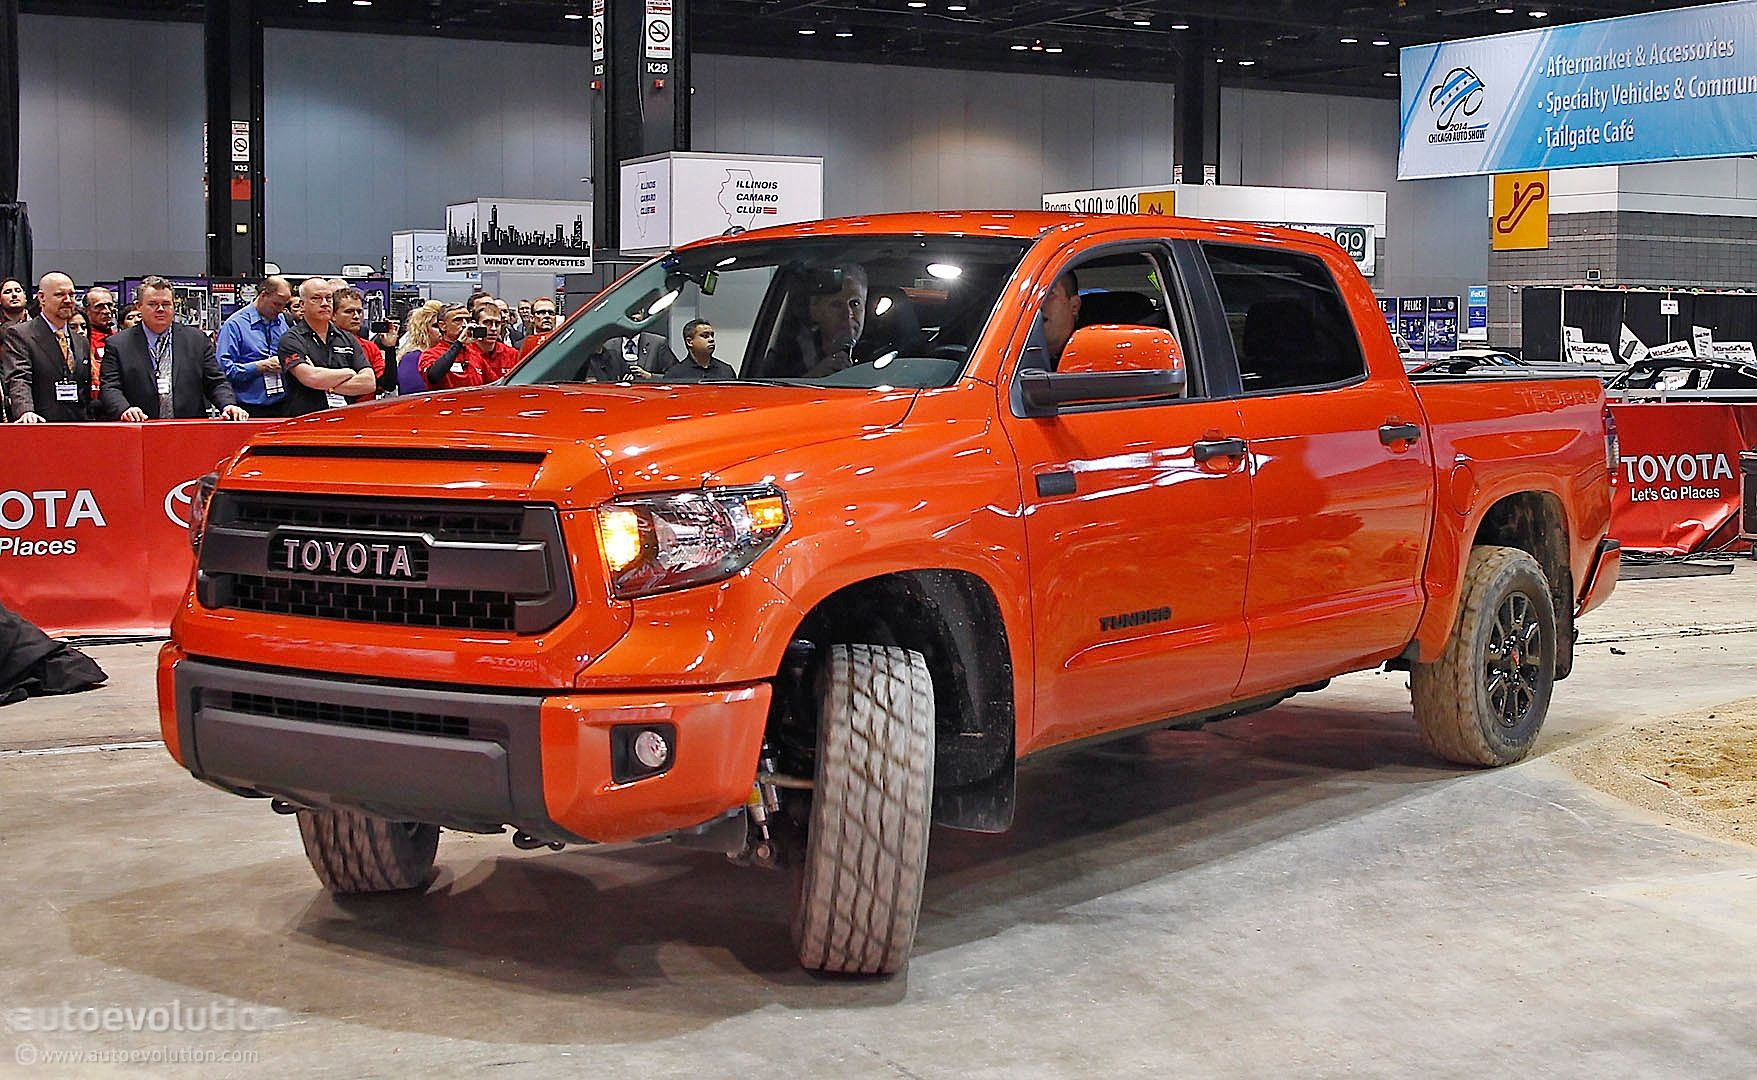 Toyota tundra trd pro details from 2014 chicago live photos_8 jpg 1757 1080 autos to consider pinterest toyota tundra toyota and cars